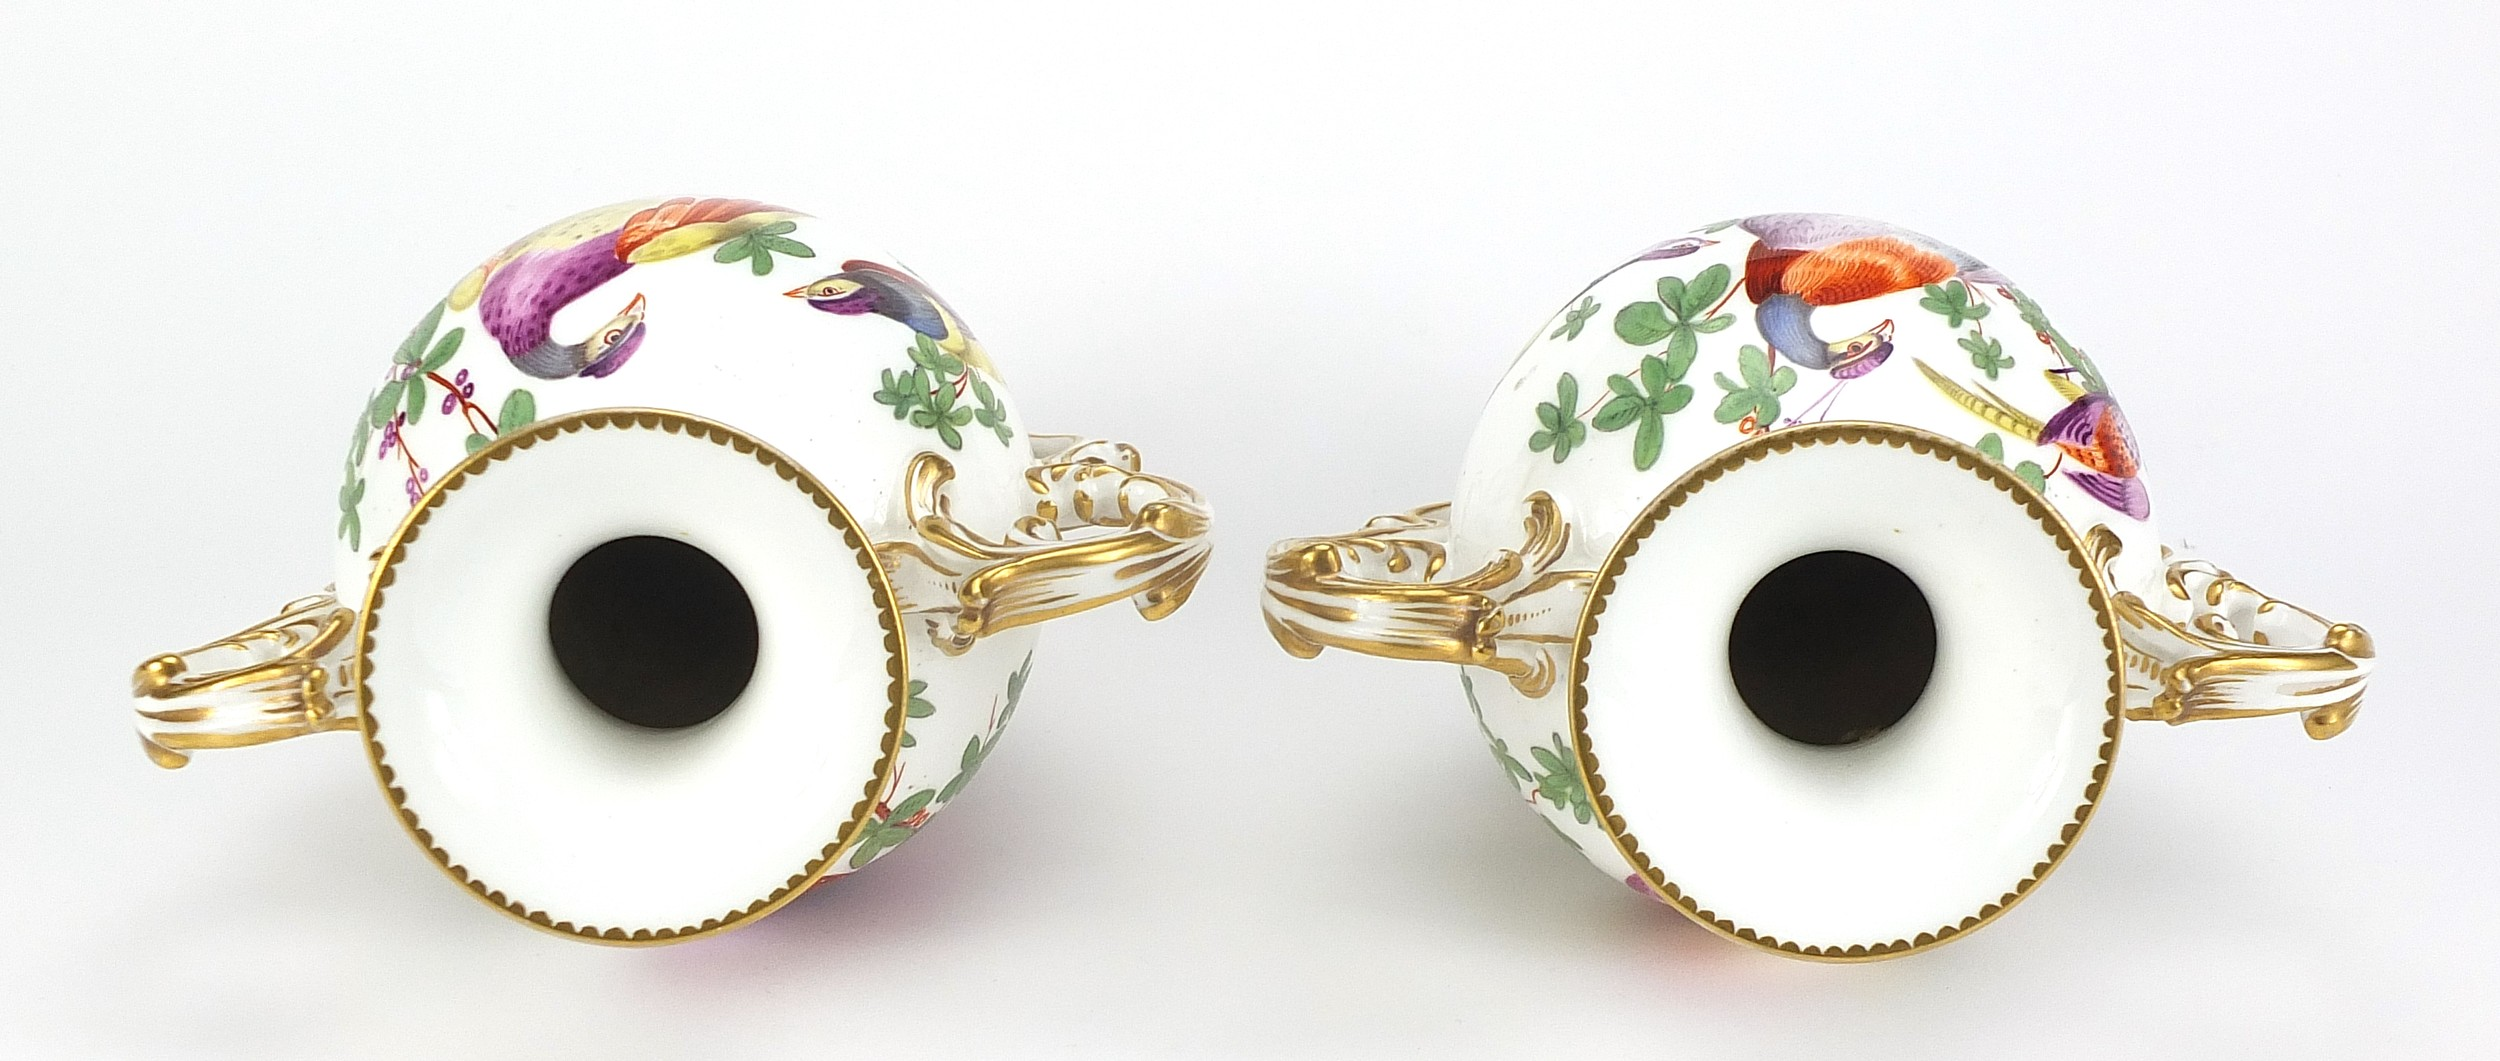 Pair of 19th century Chelsea style porcelain vases with twin handles, each hand painted with - Image 3 of 4